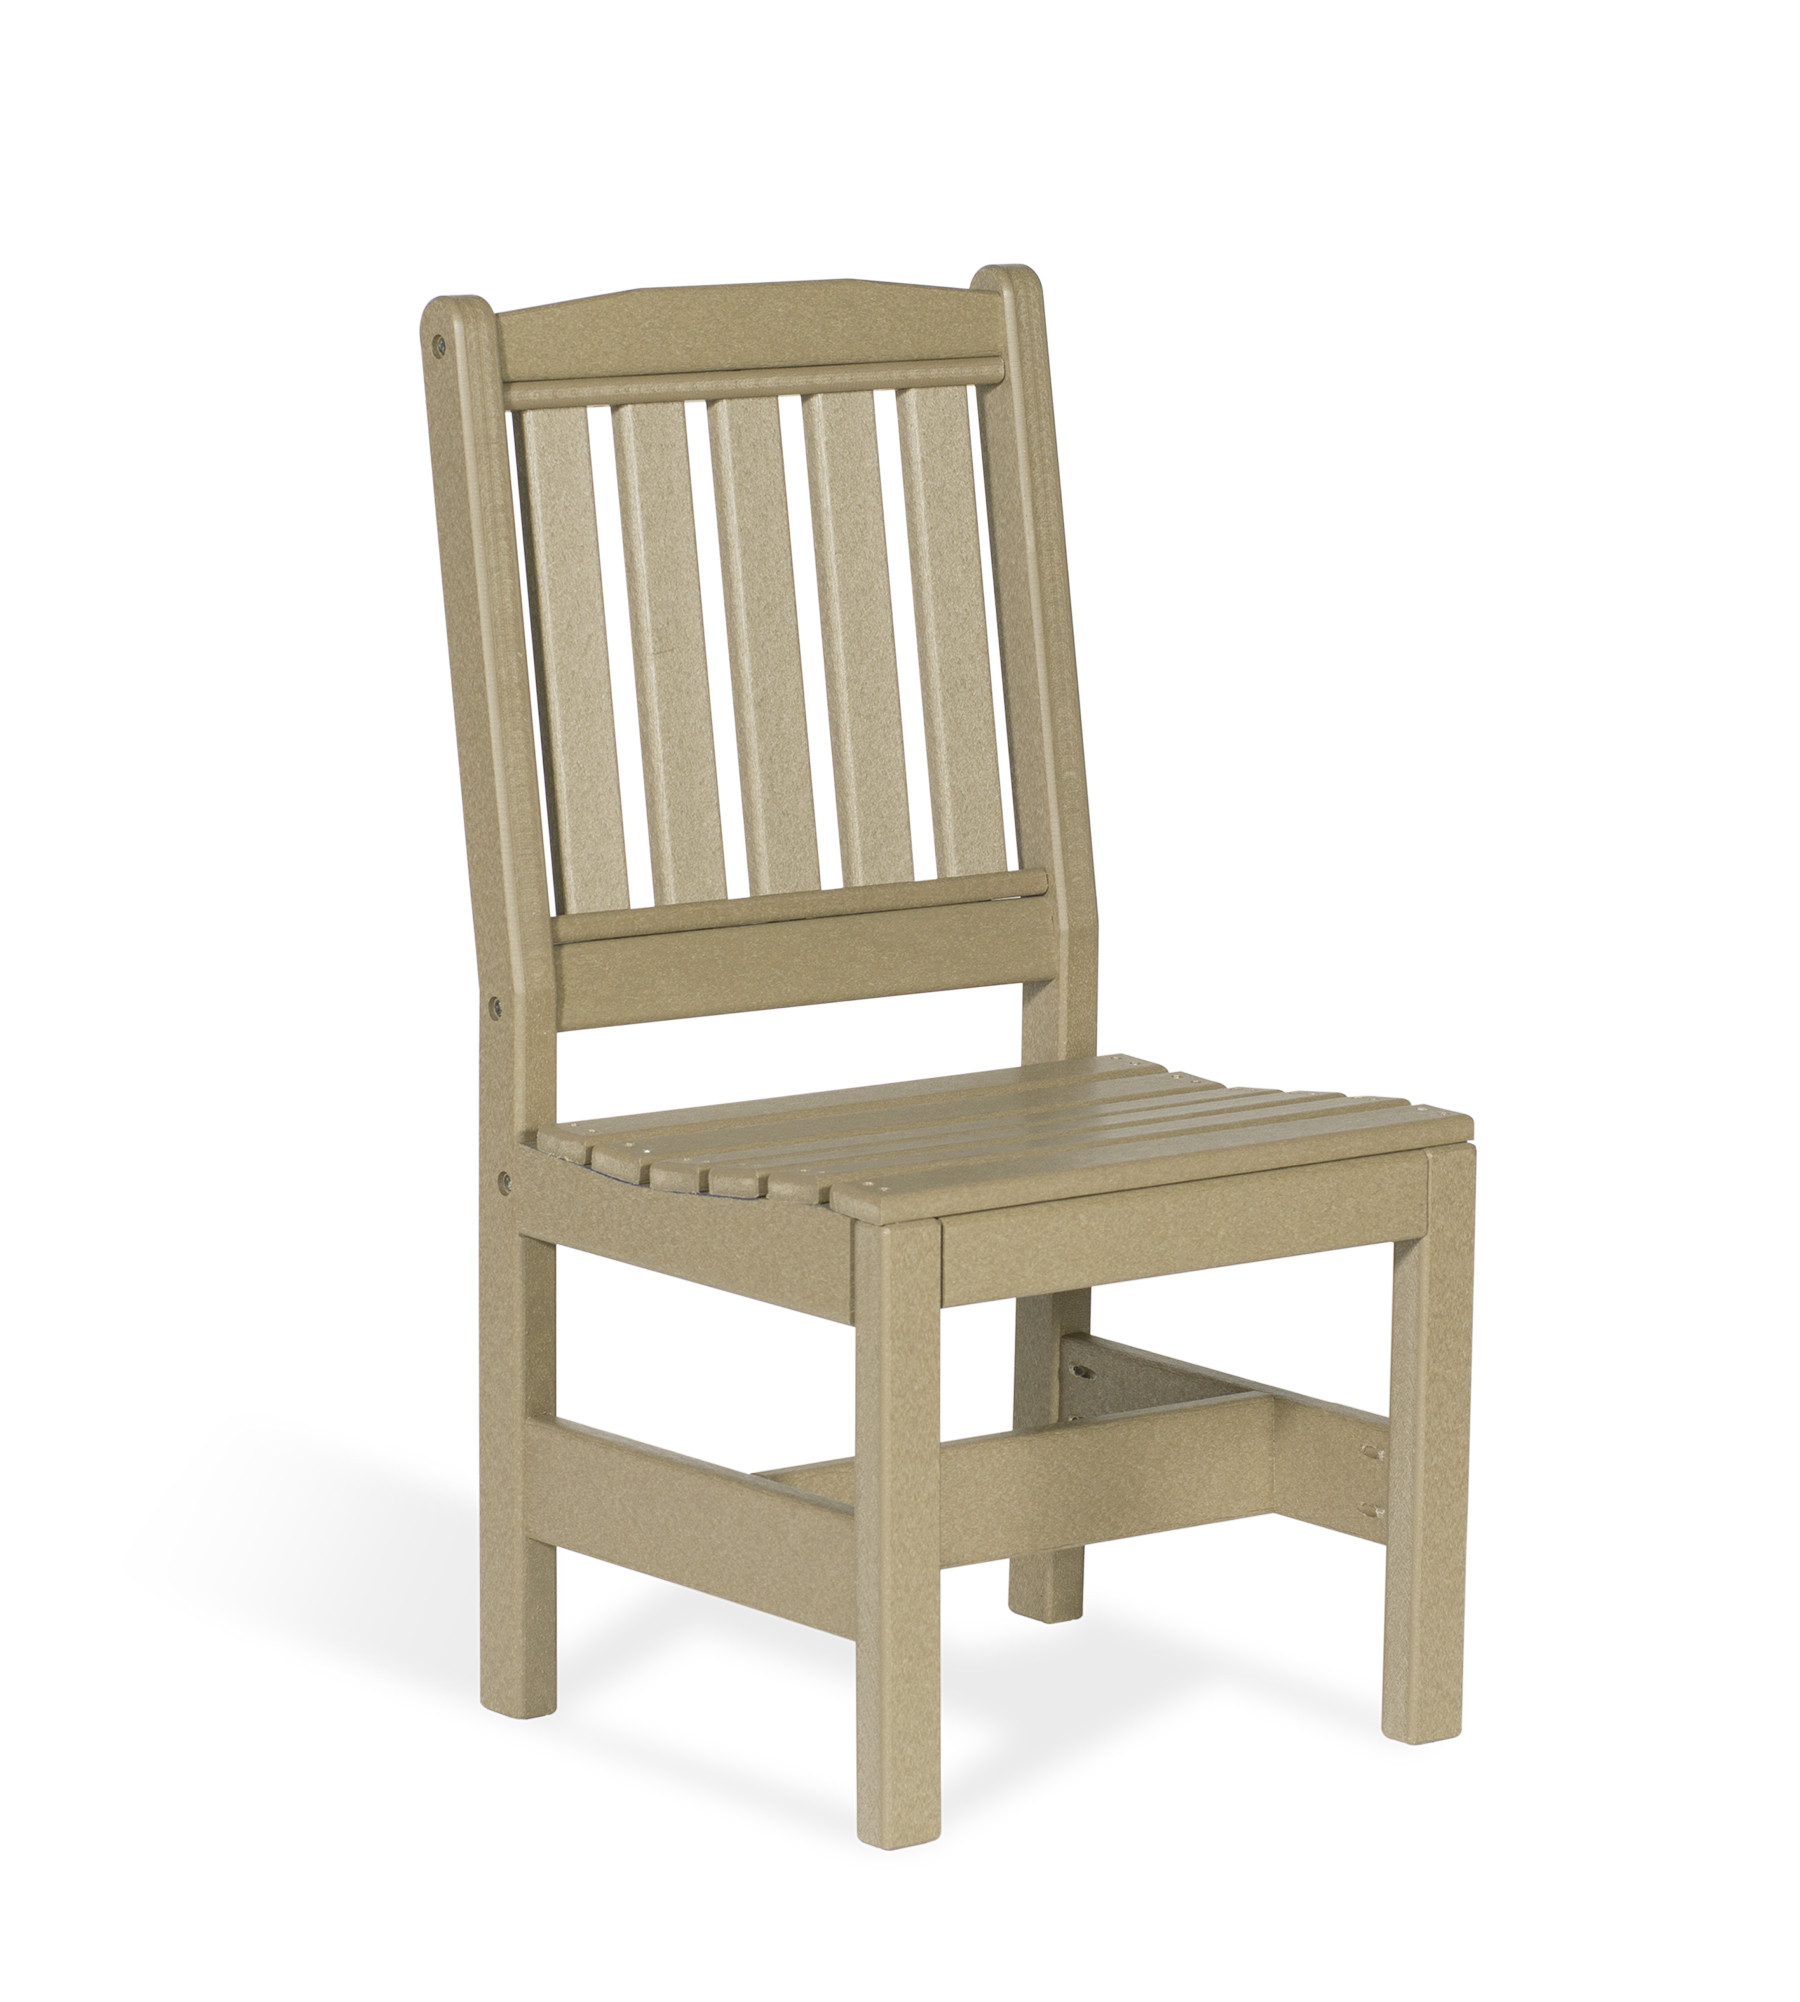 Poly English Garden Chair without Arms - Weatherwood